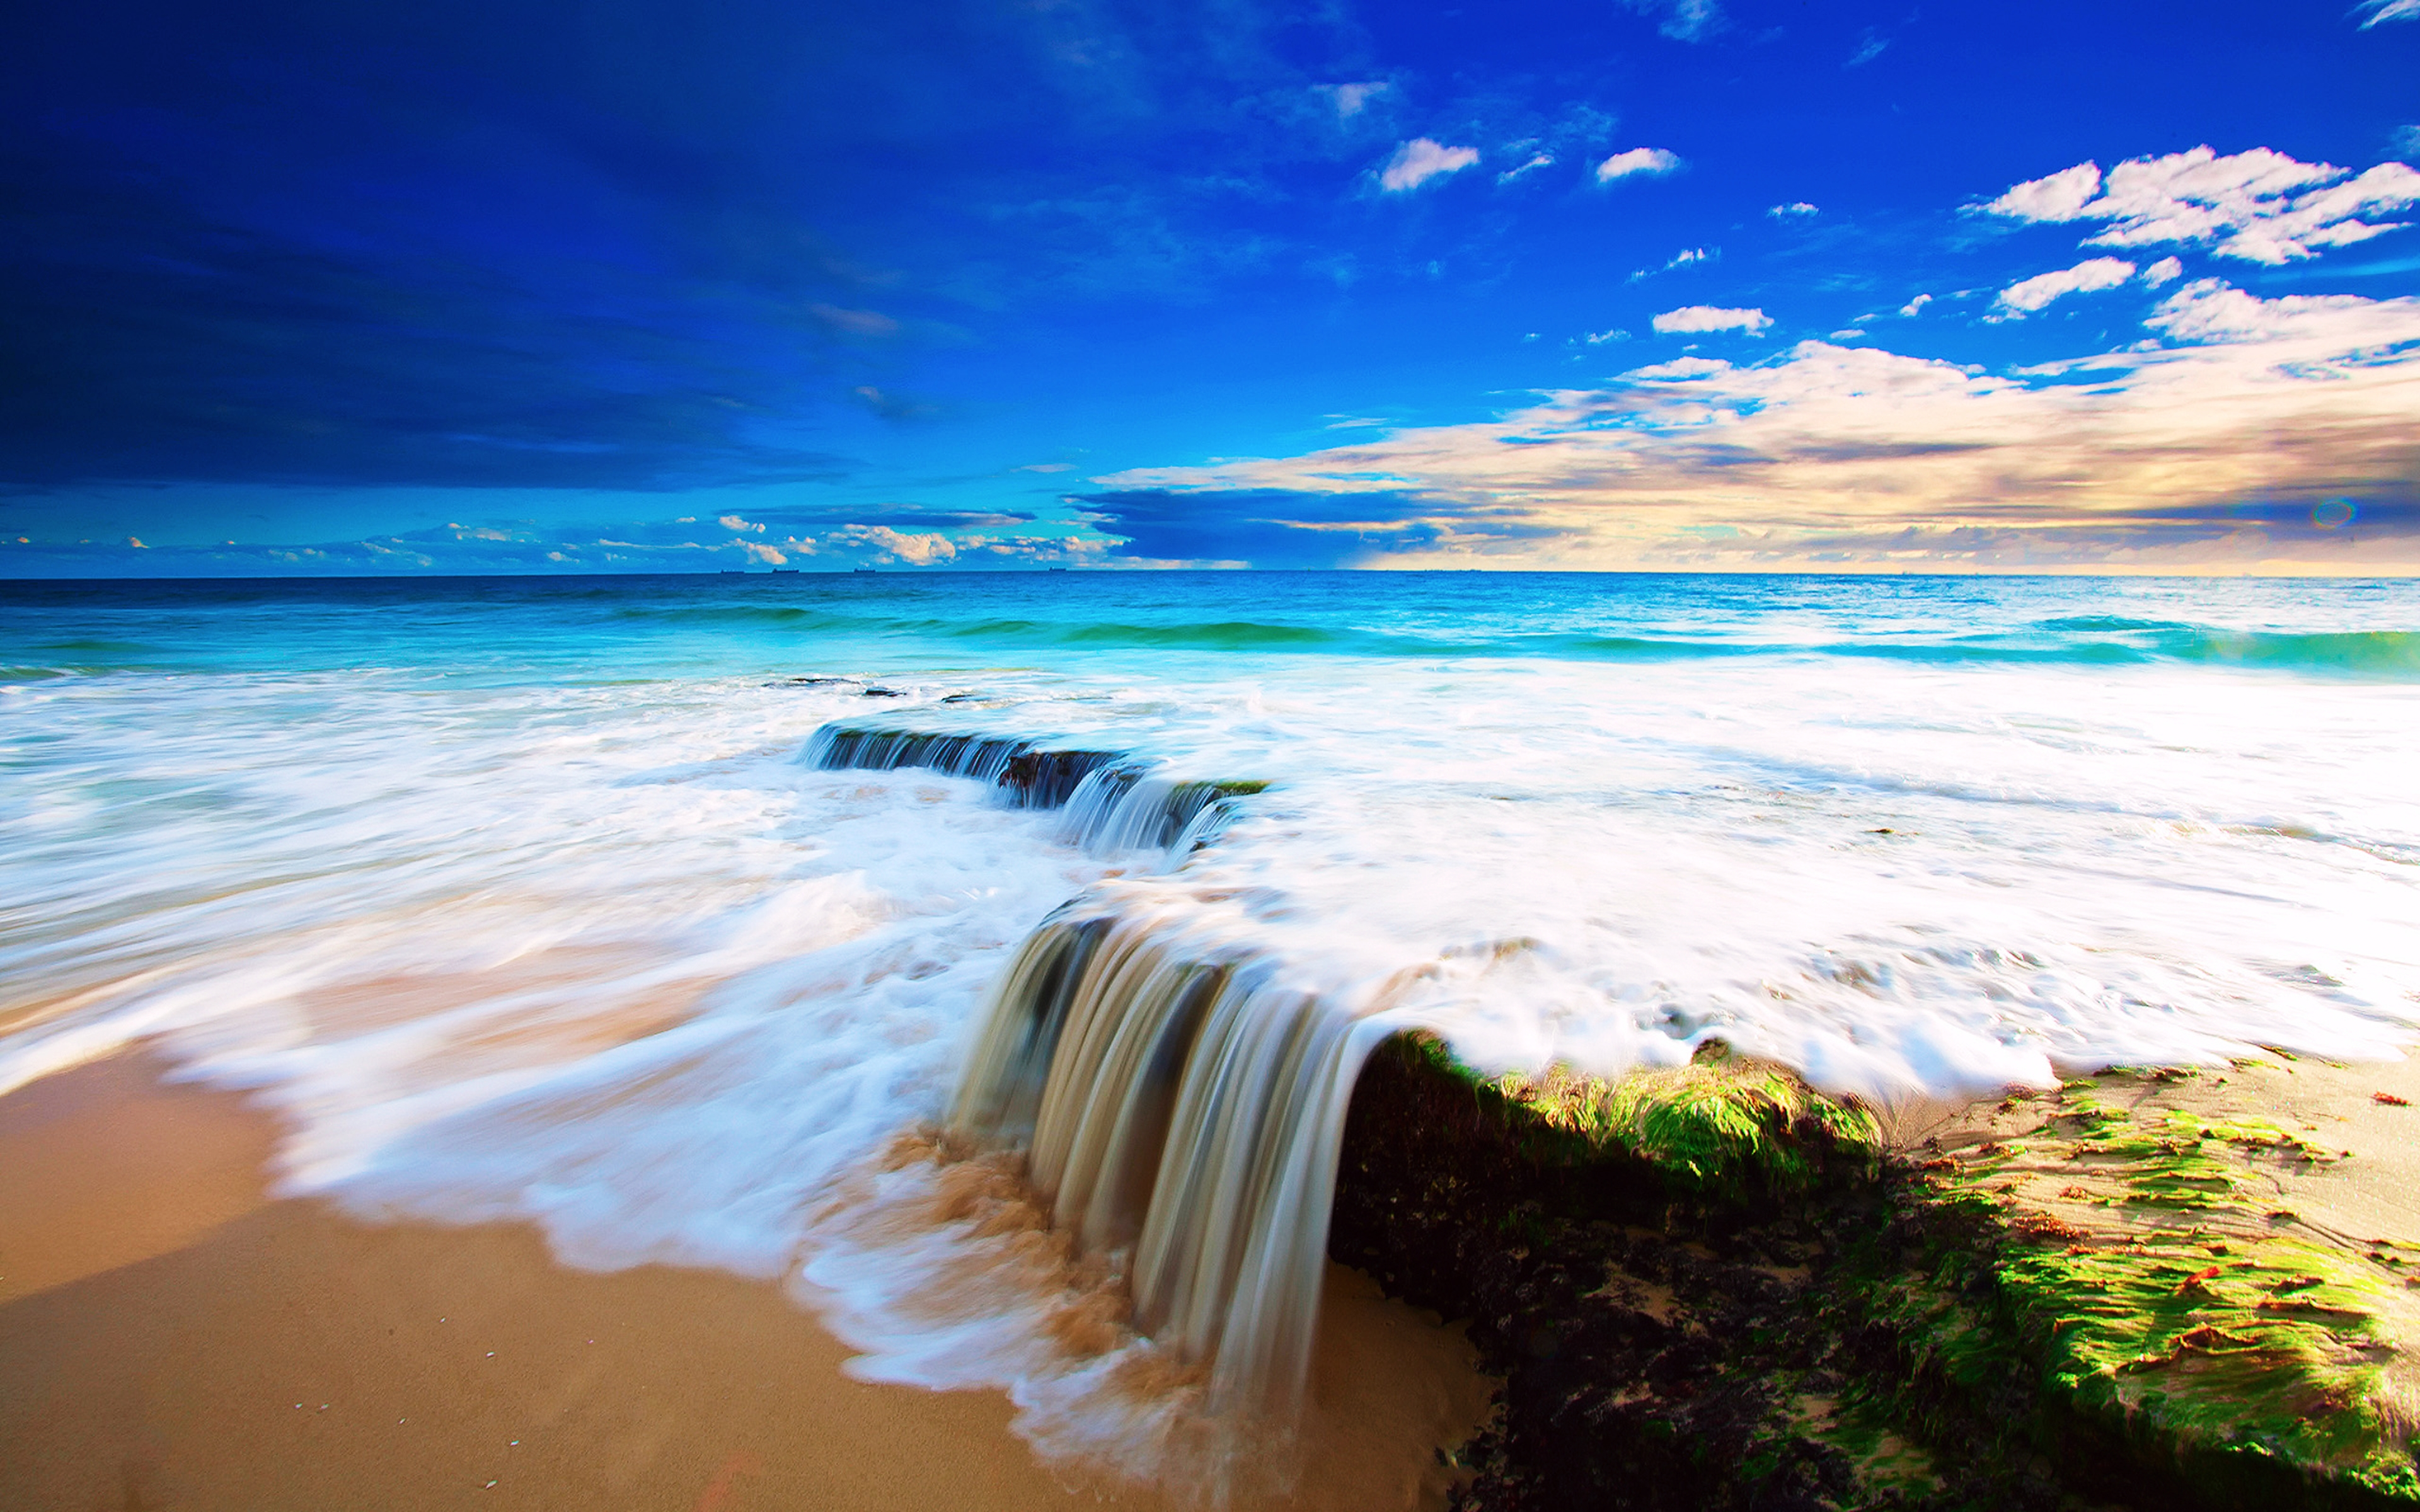 1790 ocean hd wallpapers | background images - wallpaper abyss